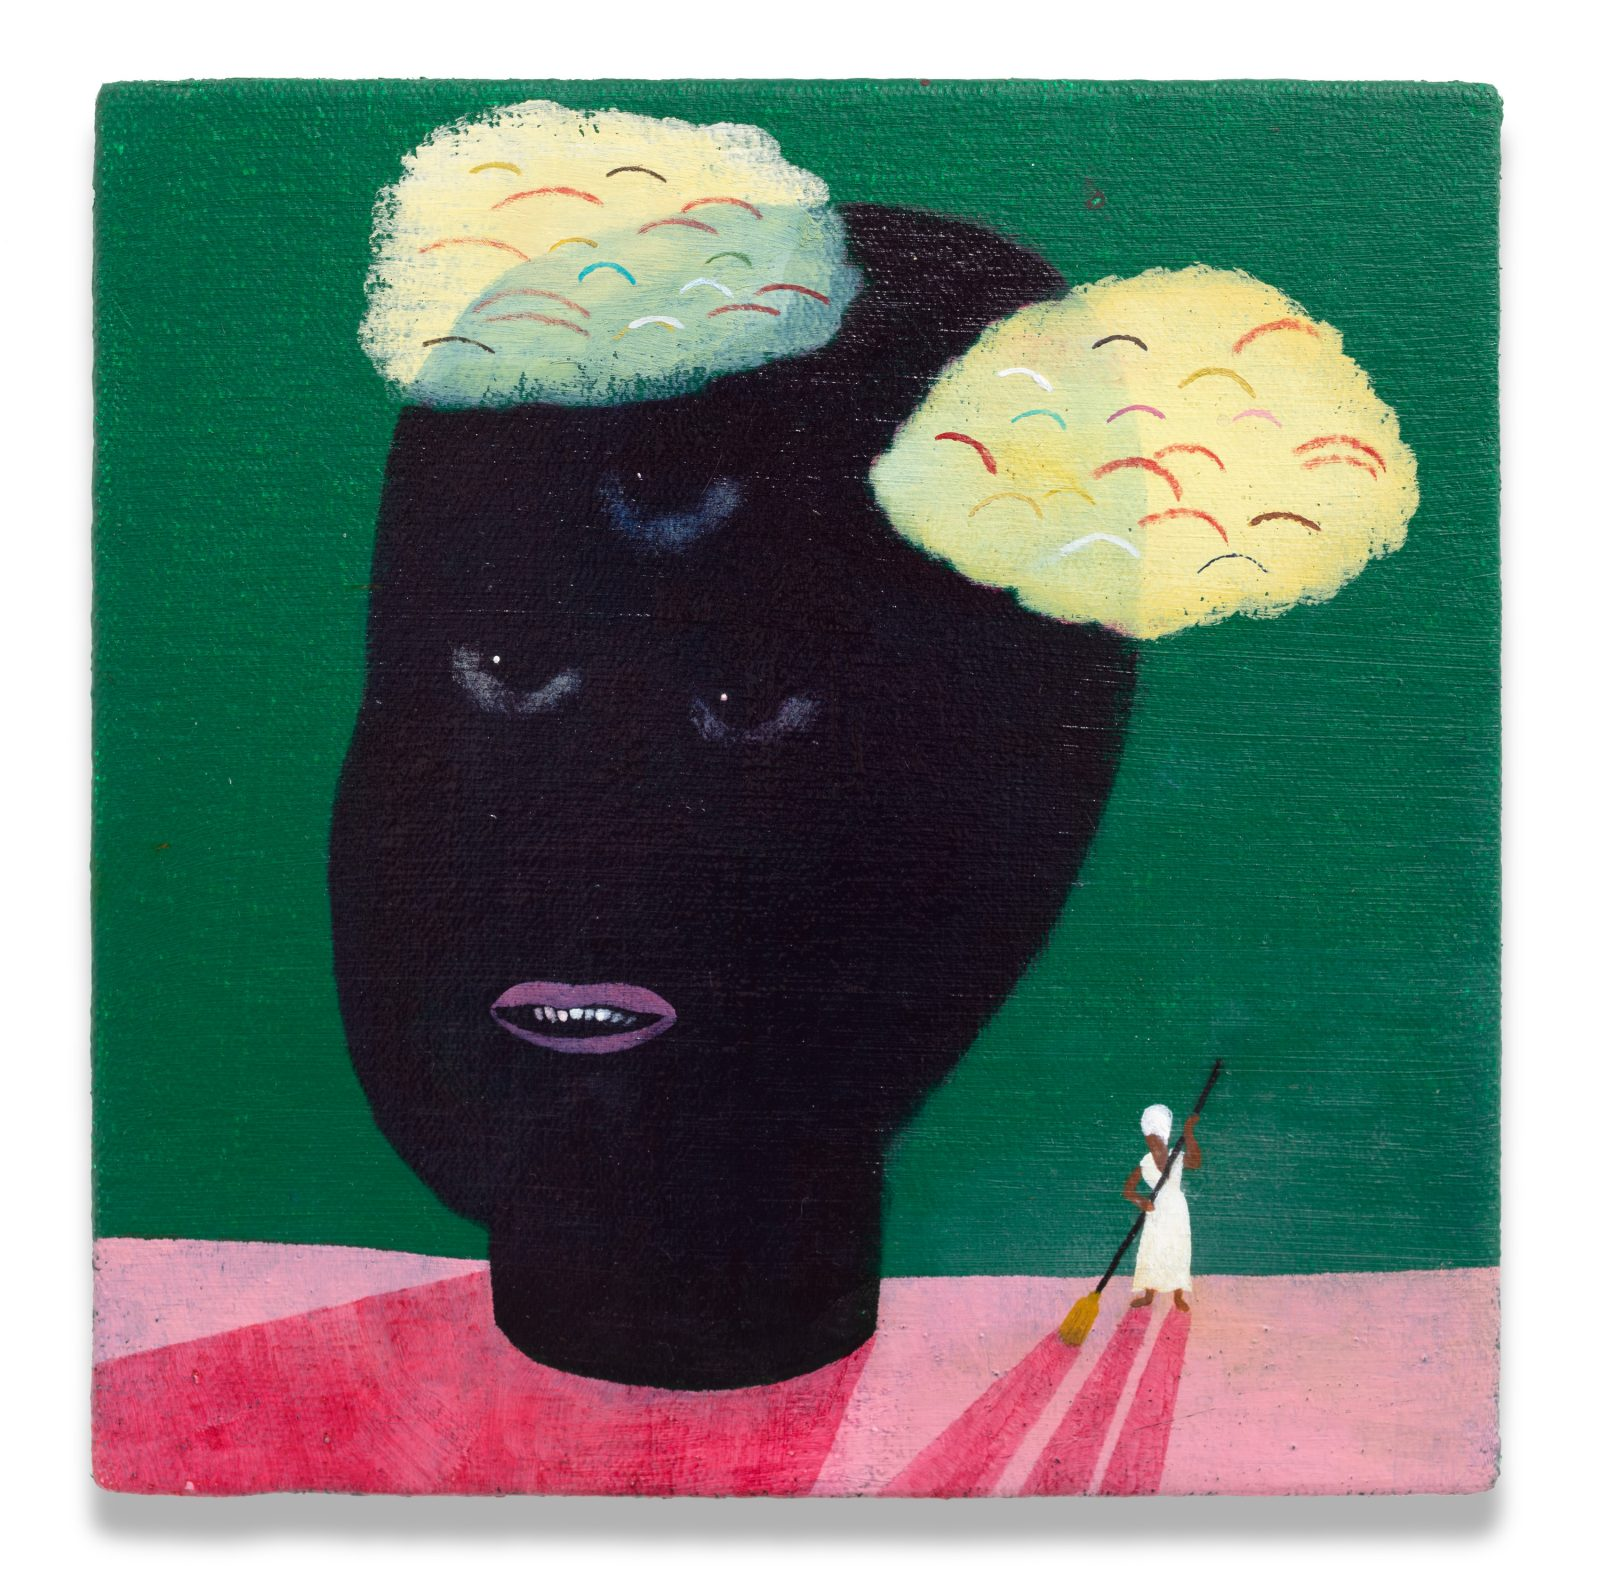 Kenny Rivero, Limpieza of the Head, 2020, oil on canvas stretched over panel, 8x8 inches, courtesy of the artist and Charles Moffett, New York. Photo credit Tom Barratt